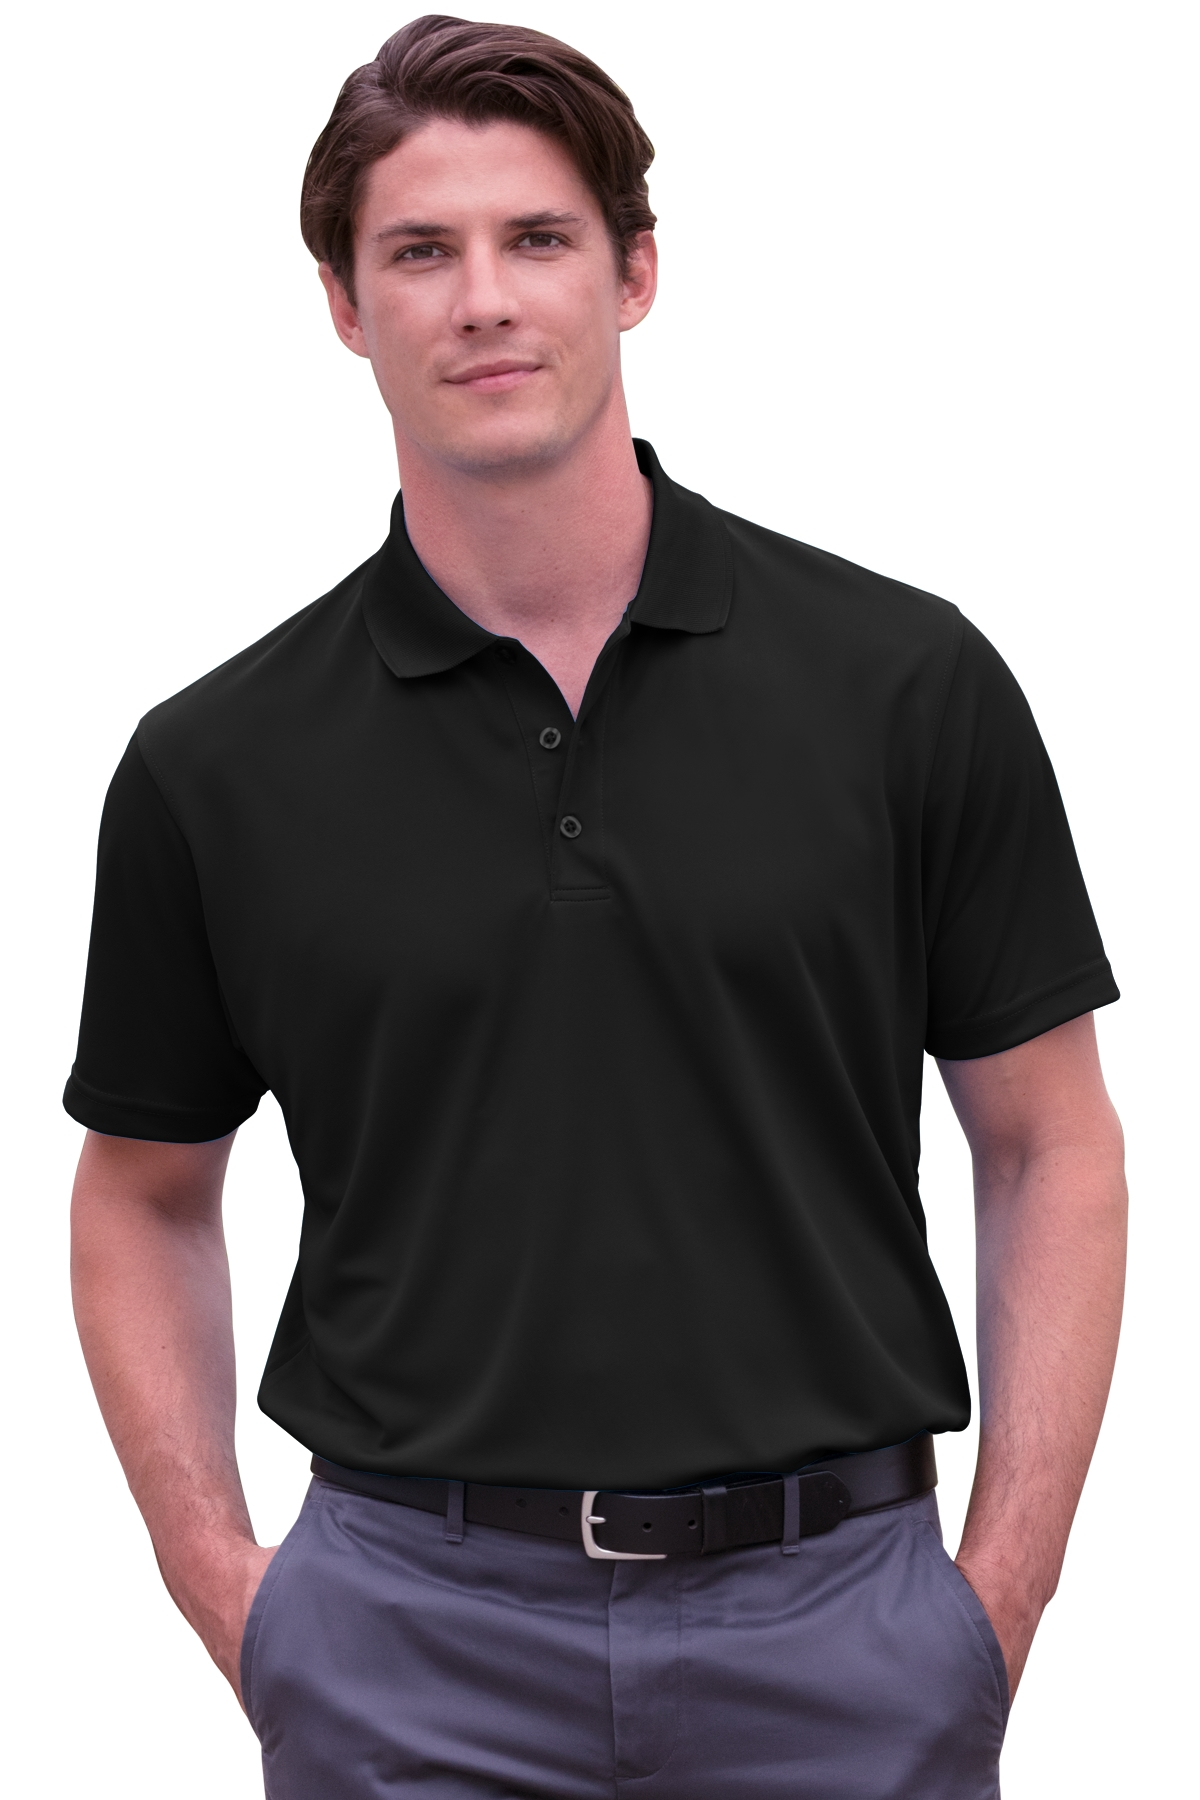 Vansport 2600 - Omega Solid Mesh Tech Polo